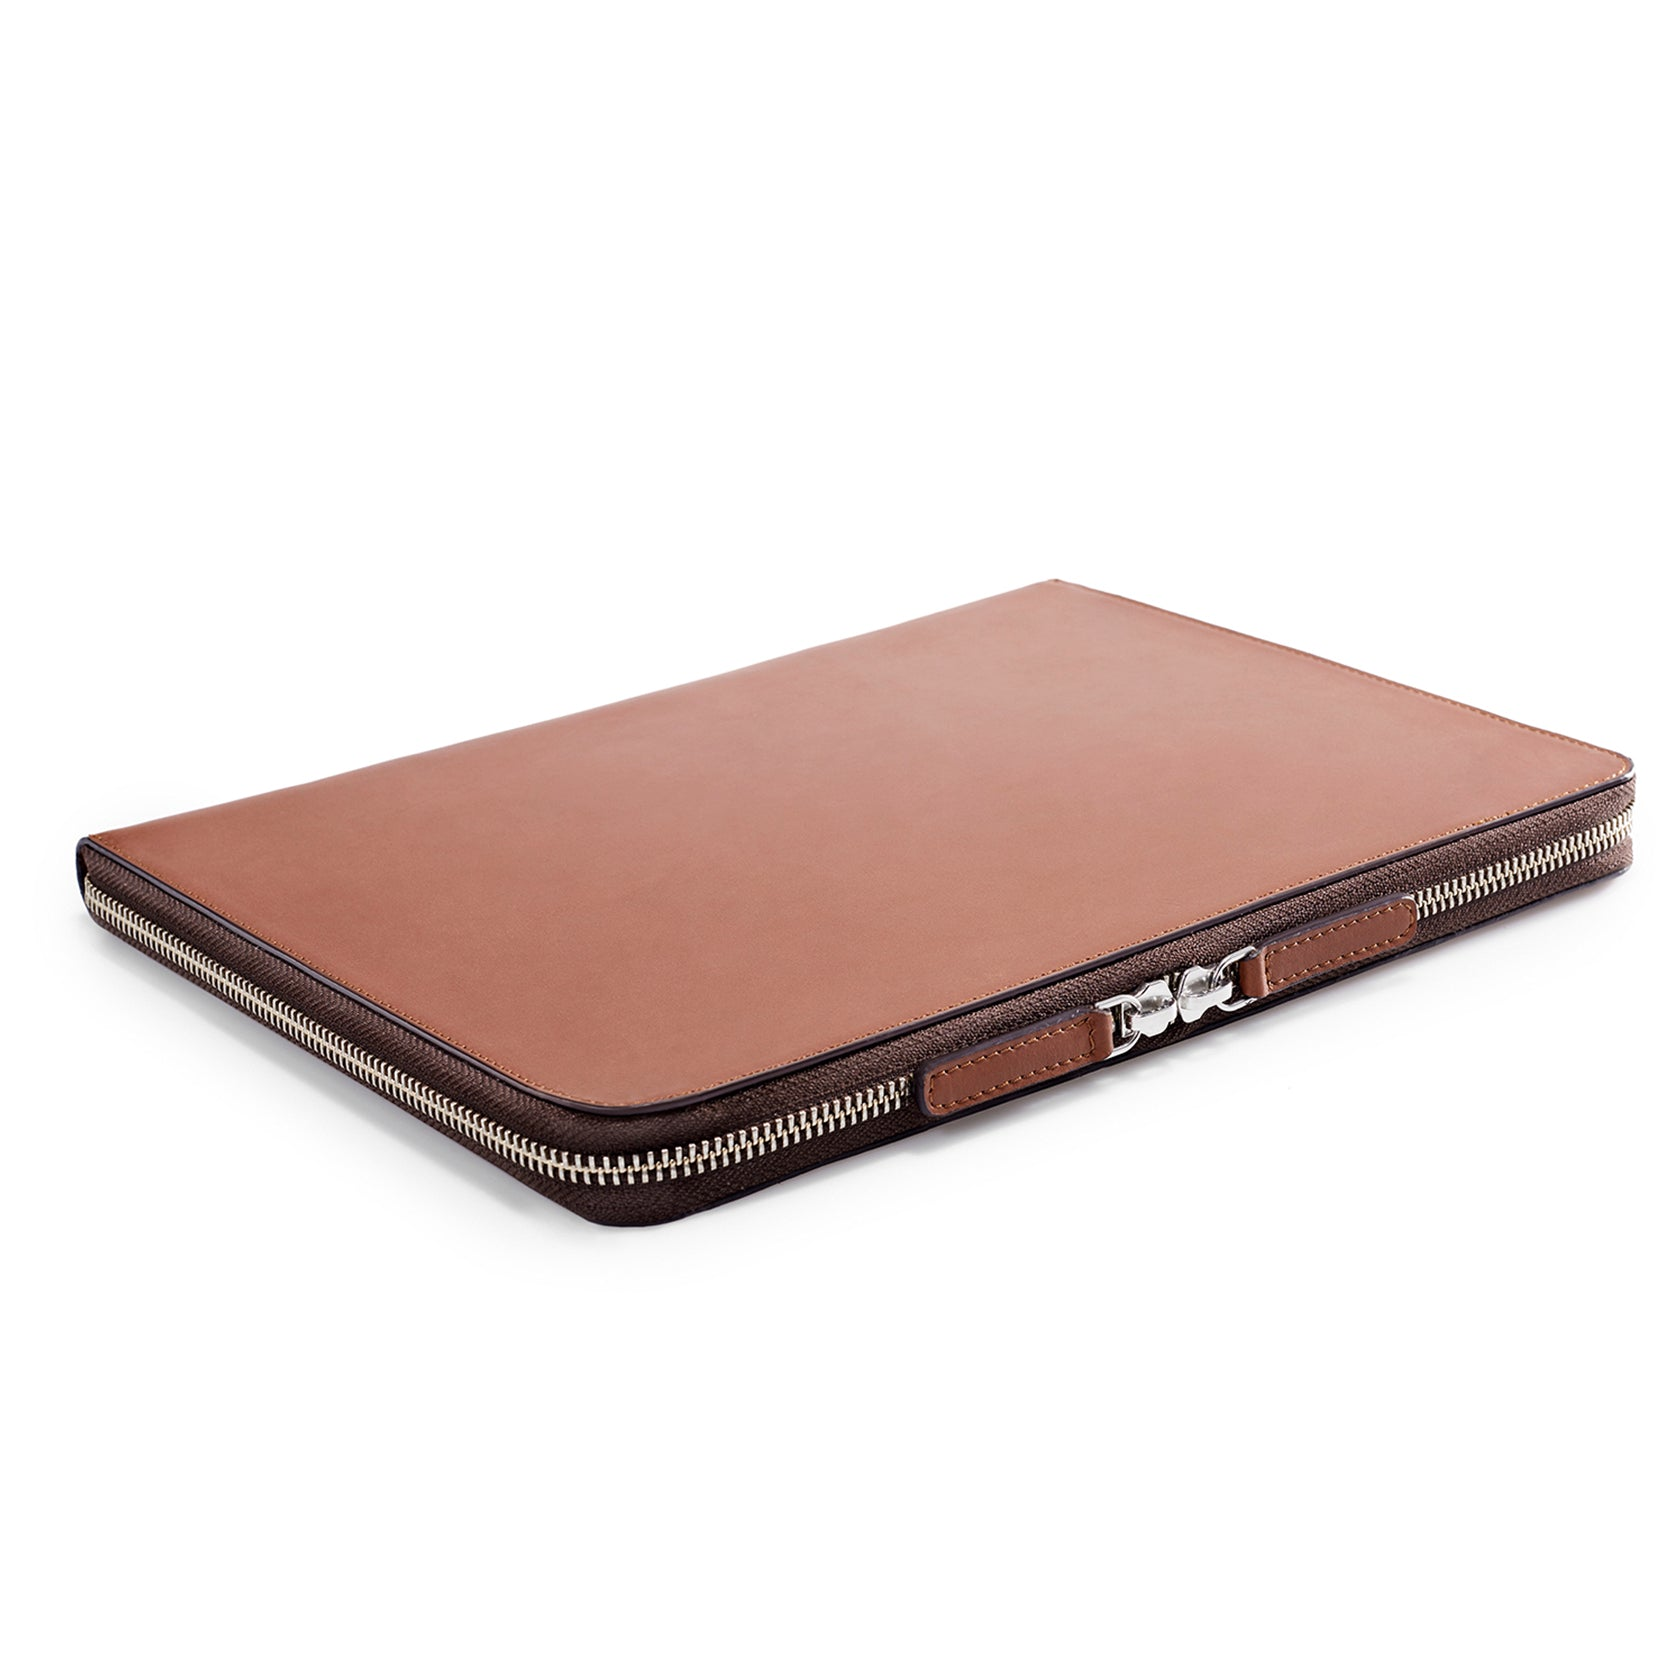 "LAPTOP PORTFOLIO 12"" COGNAC NATURAL BEIGE"